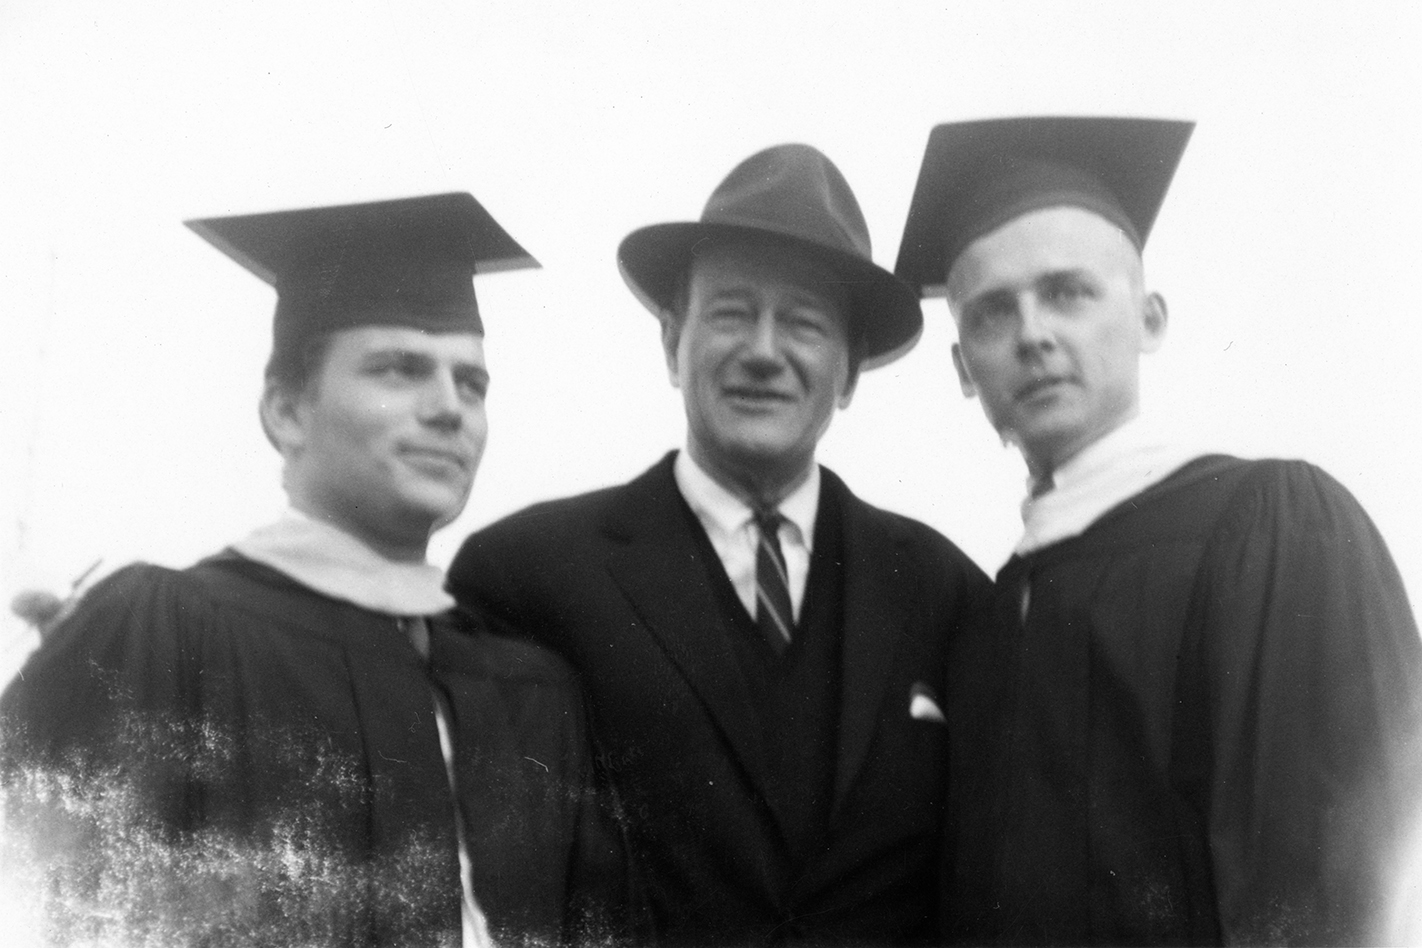 John Wayne (center) with son Patrick (left) at his graduation from LMU in 1961.